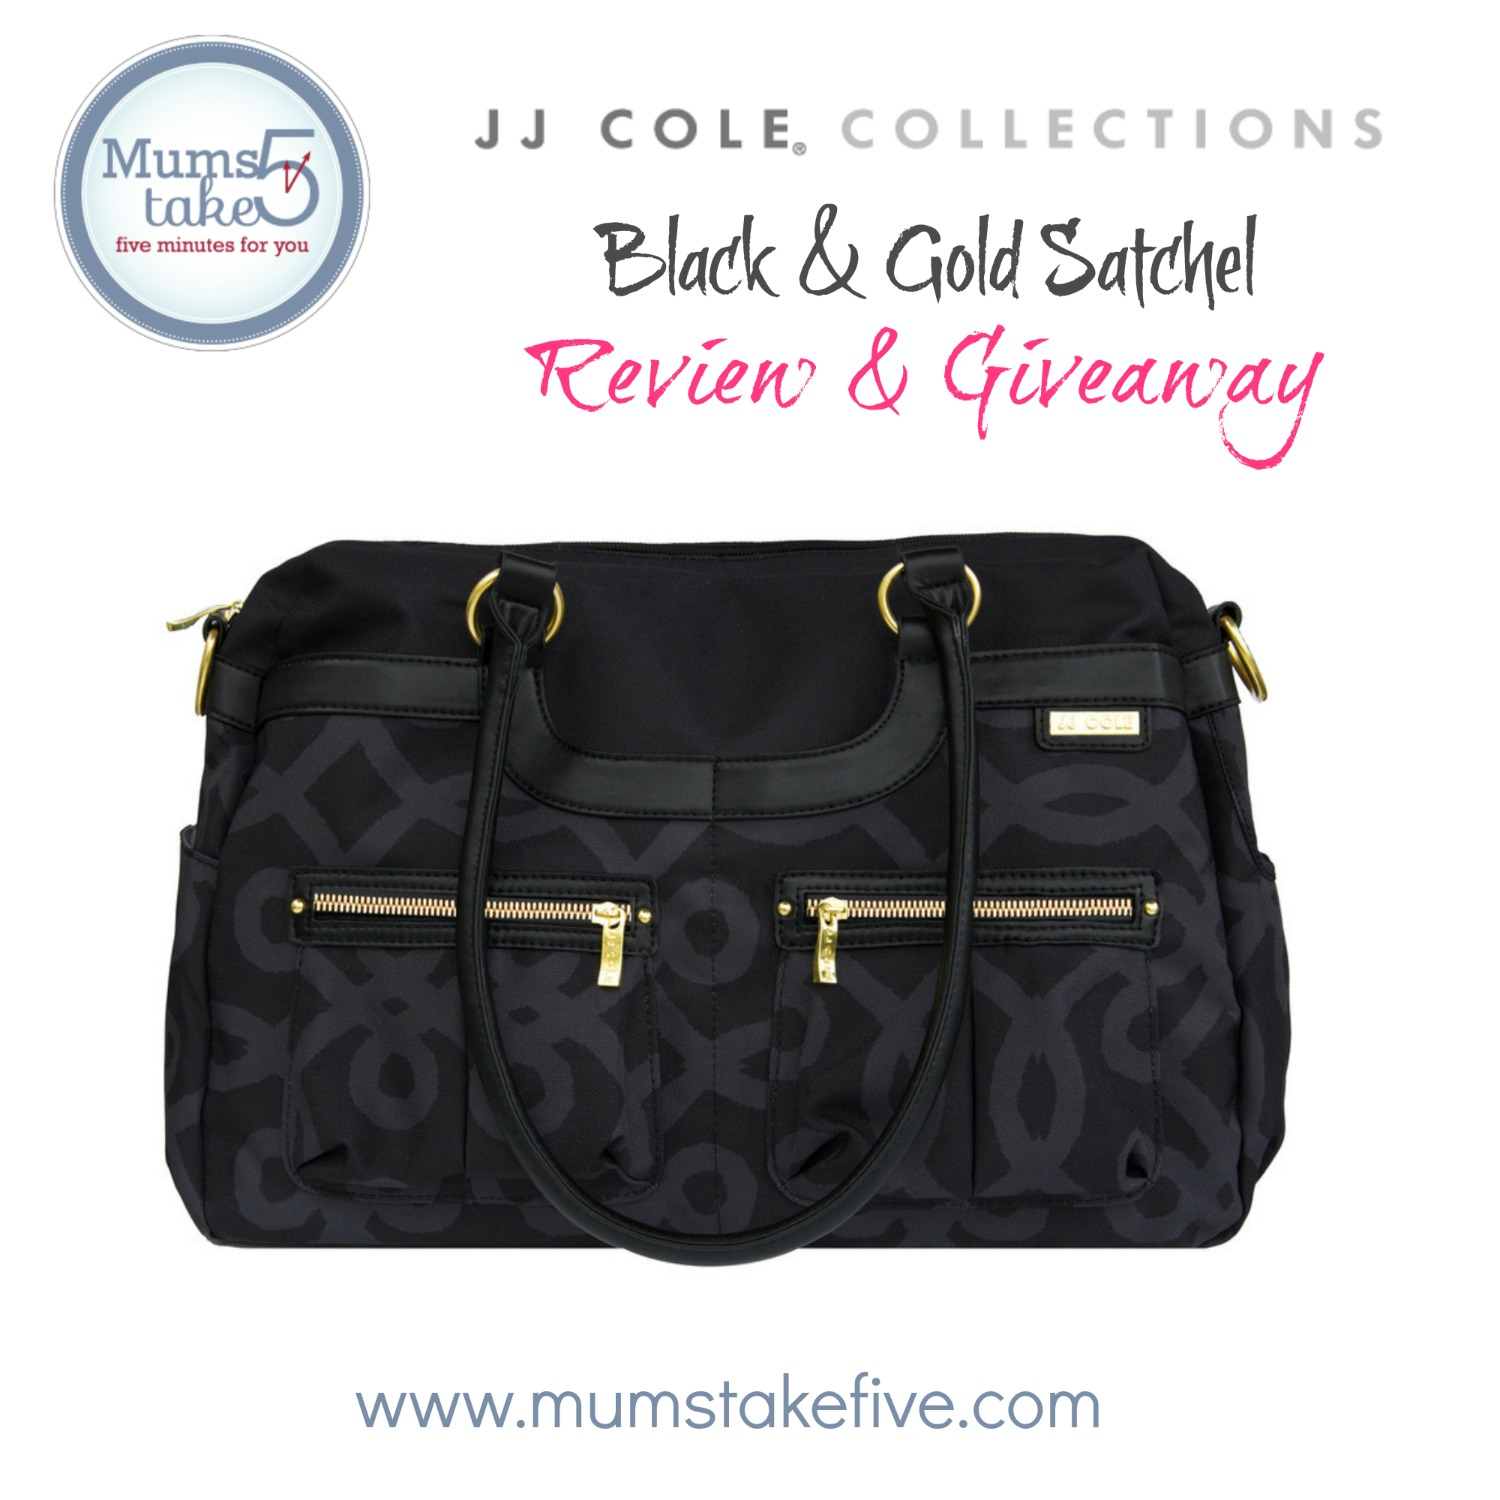 JJ Cole COllections Black and Gold Satchel